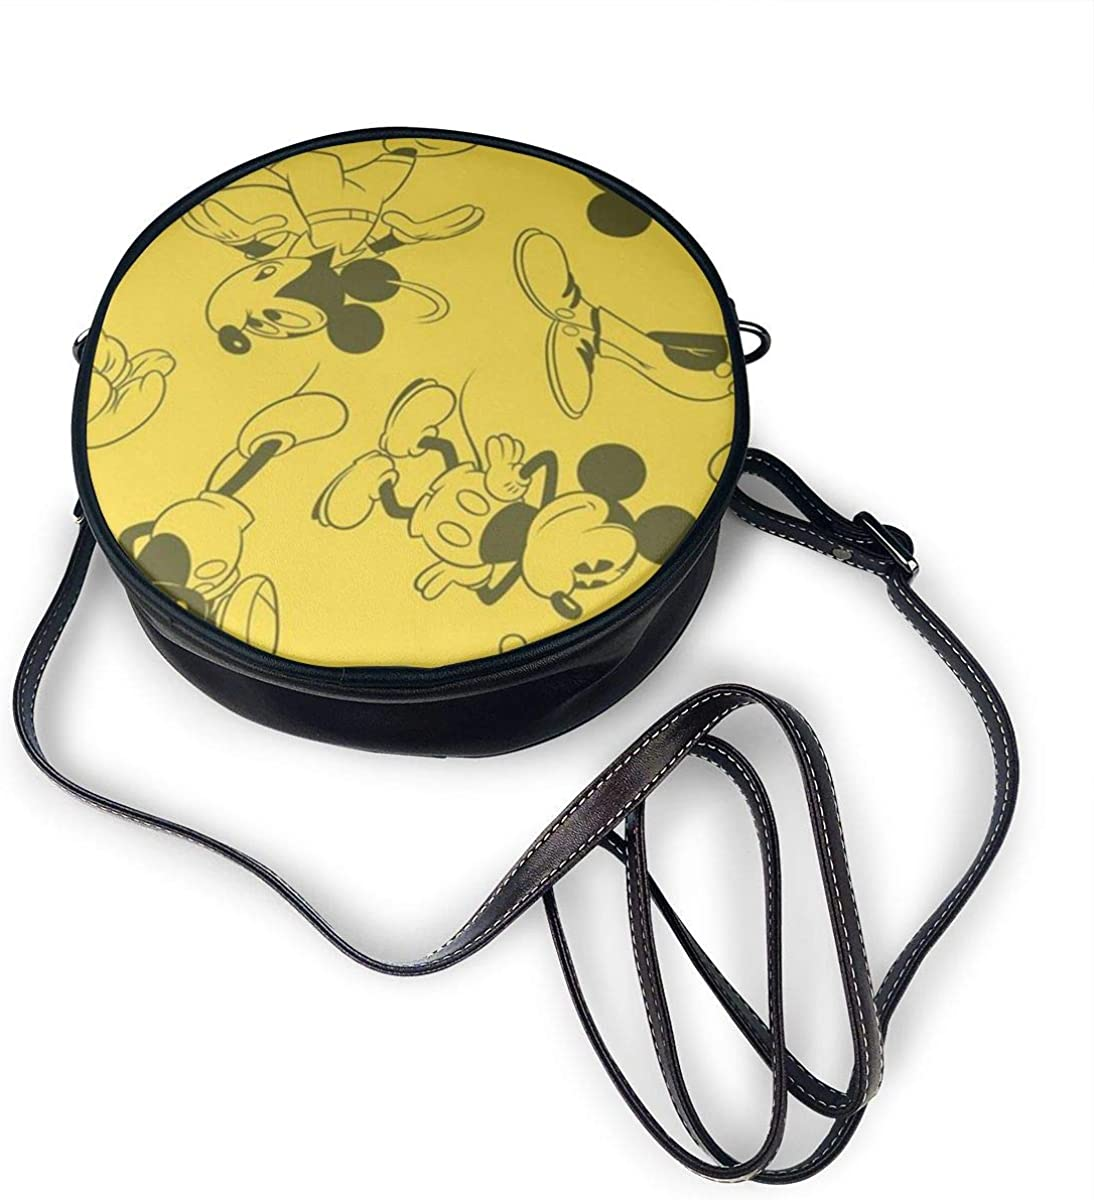 Yello Mickey Mouse Zipper Shoulder Bag For Casual Travel Trendy Round Crossbody Bag